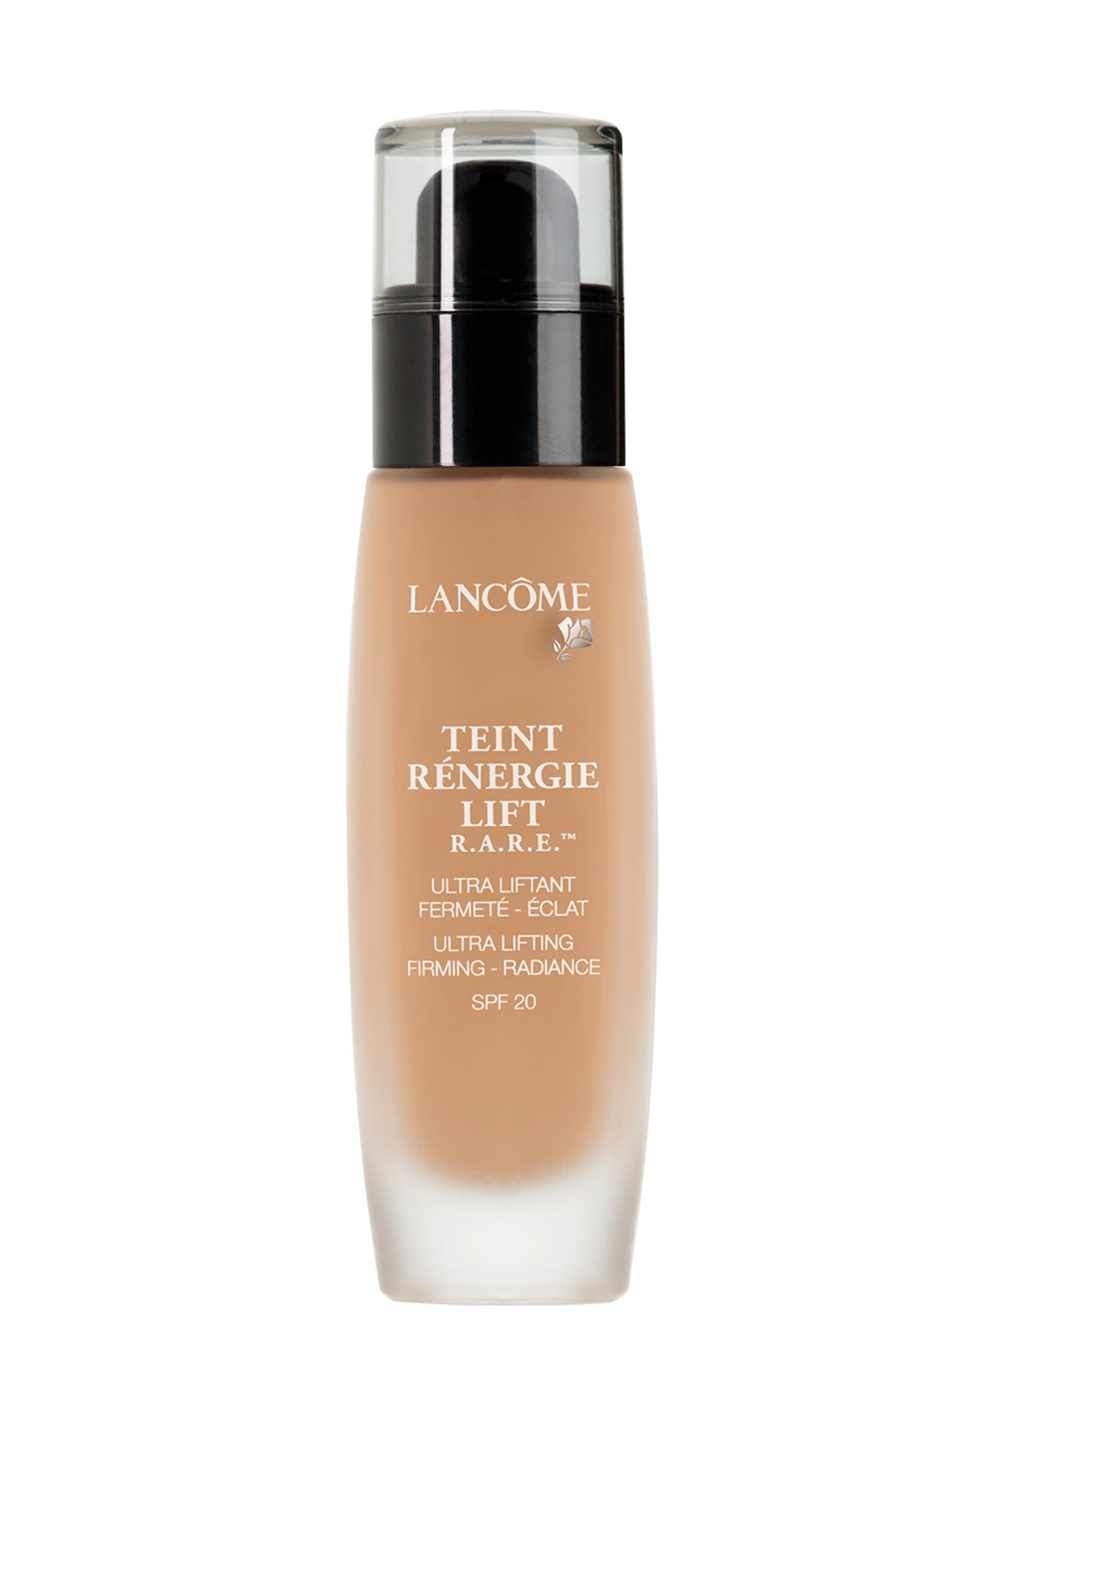 Lancome Teint Renergie Lift R.A.R.E Liquid Foundation with SPF20, 03 Beige Diaphane